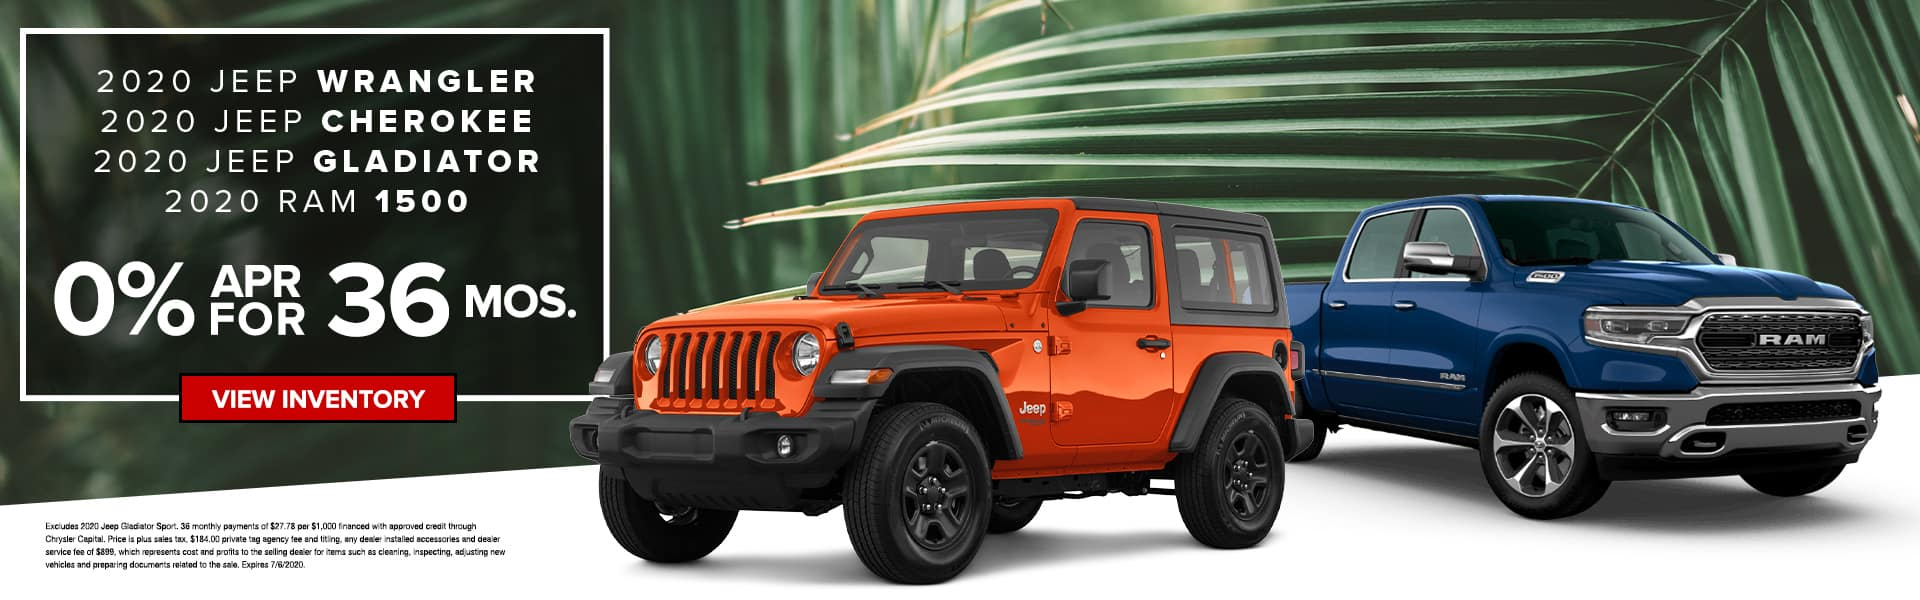 2020 Jeep Wrangler, 2020 Jeep Cherokee, 2020 Jeep Gladiator, 2020 RAM 1500 | 0% APR For 36 Months